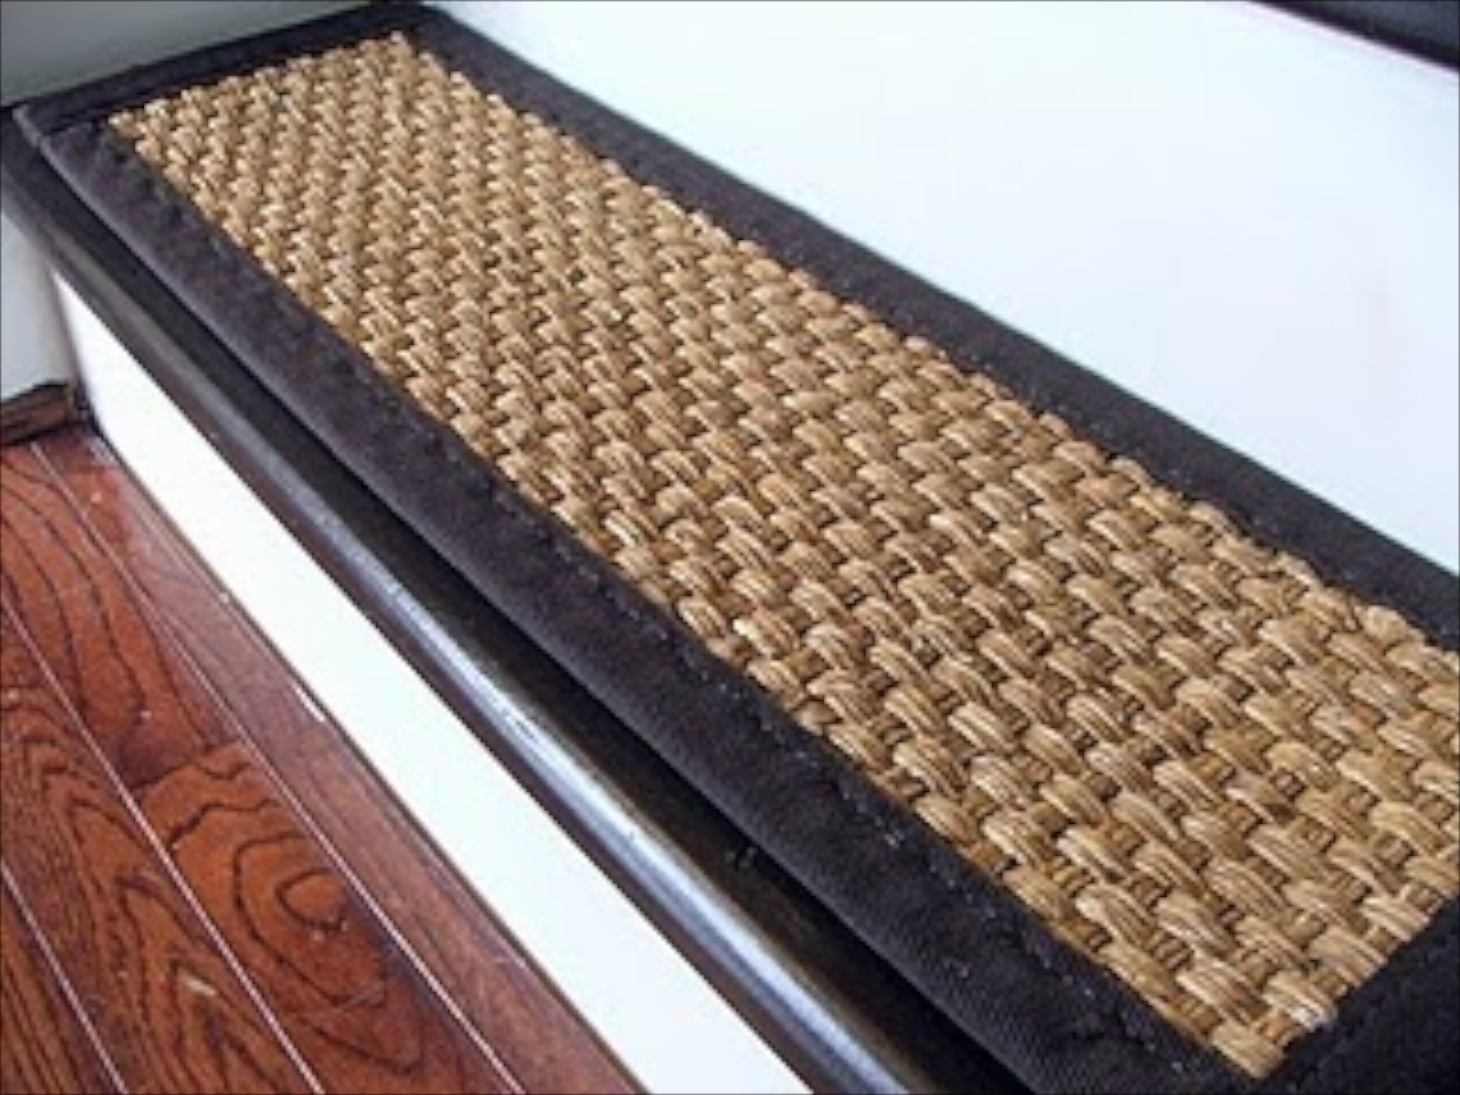 Decor Beautiful Stair Tread Covers Make An Elegant Addition To Throughout Rectangular Stair Treads (View 14 of 15)